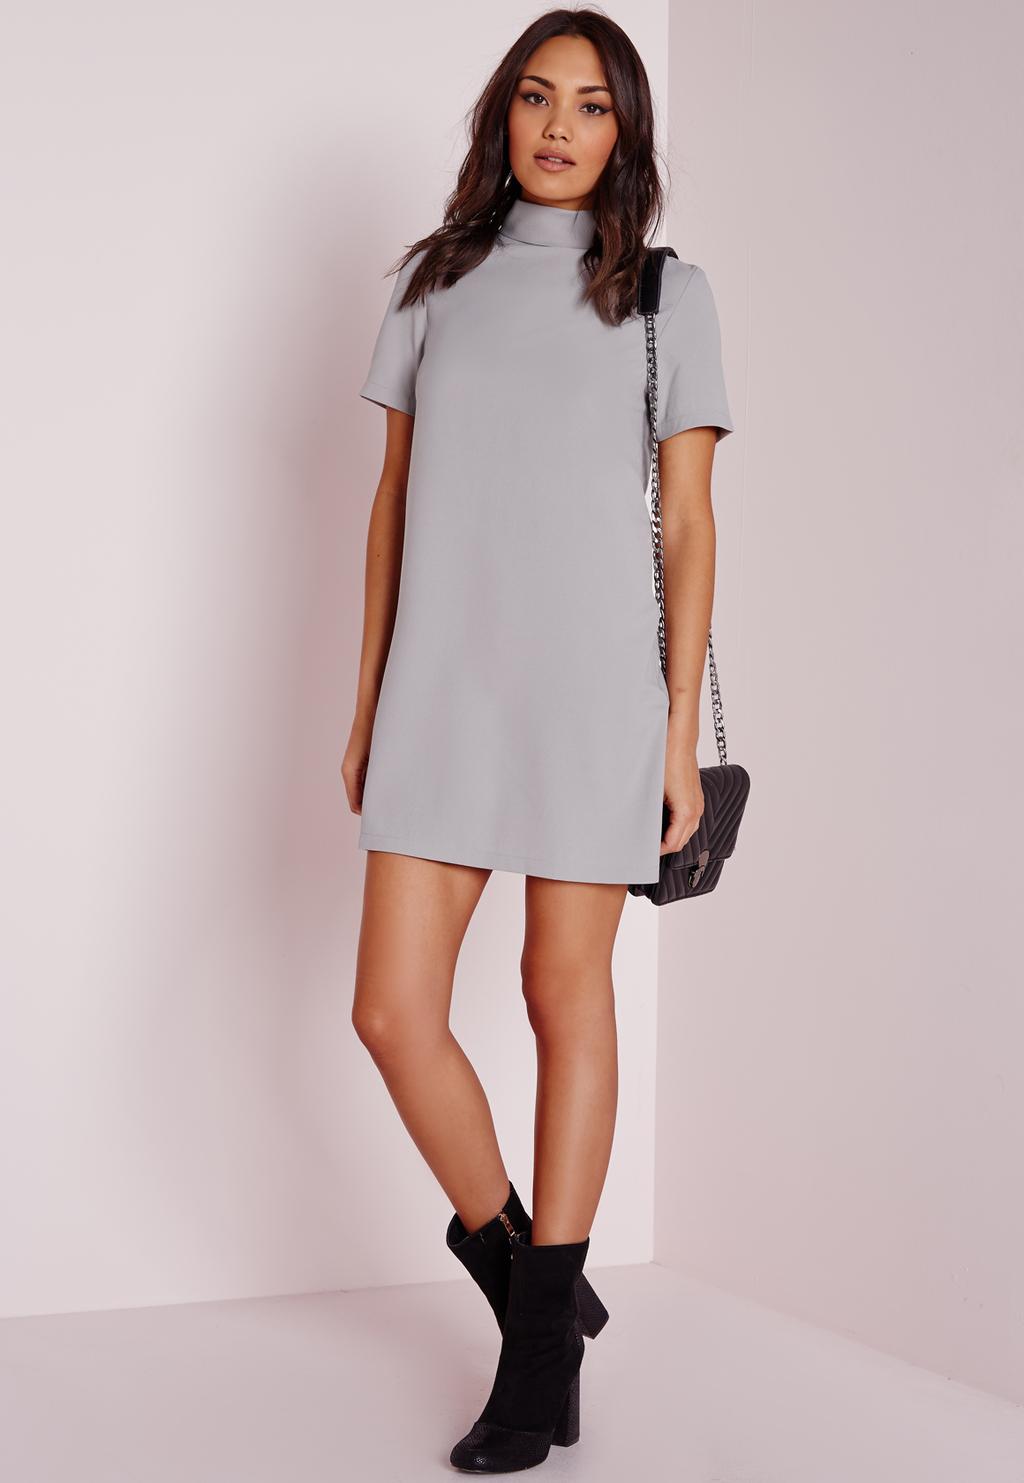 High Neck Short Sleeve Shift Dress Grey, Grey - style: shift; length: mini; pattern: plain; neckline: high neck; predominant colour: light grey; occasions: evening; fit: body skimming; fibres: polyester/polyamide - stretch; sleeve length: short sleeve; sleeve style: standard; texture group: crepes; pattern type: fabric; season: a/w 2015; wardrobe: event